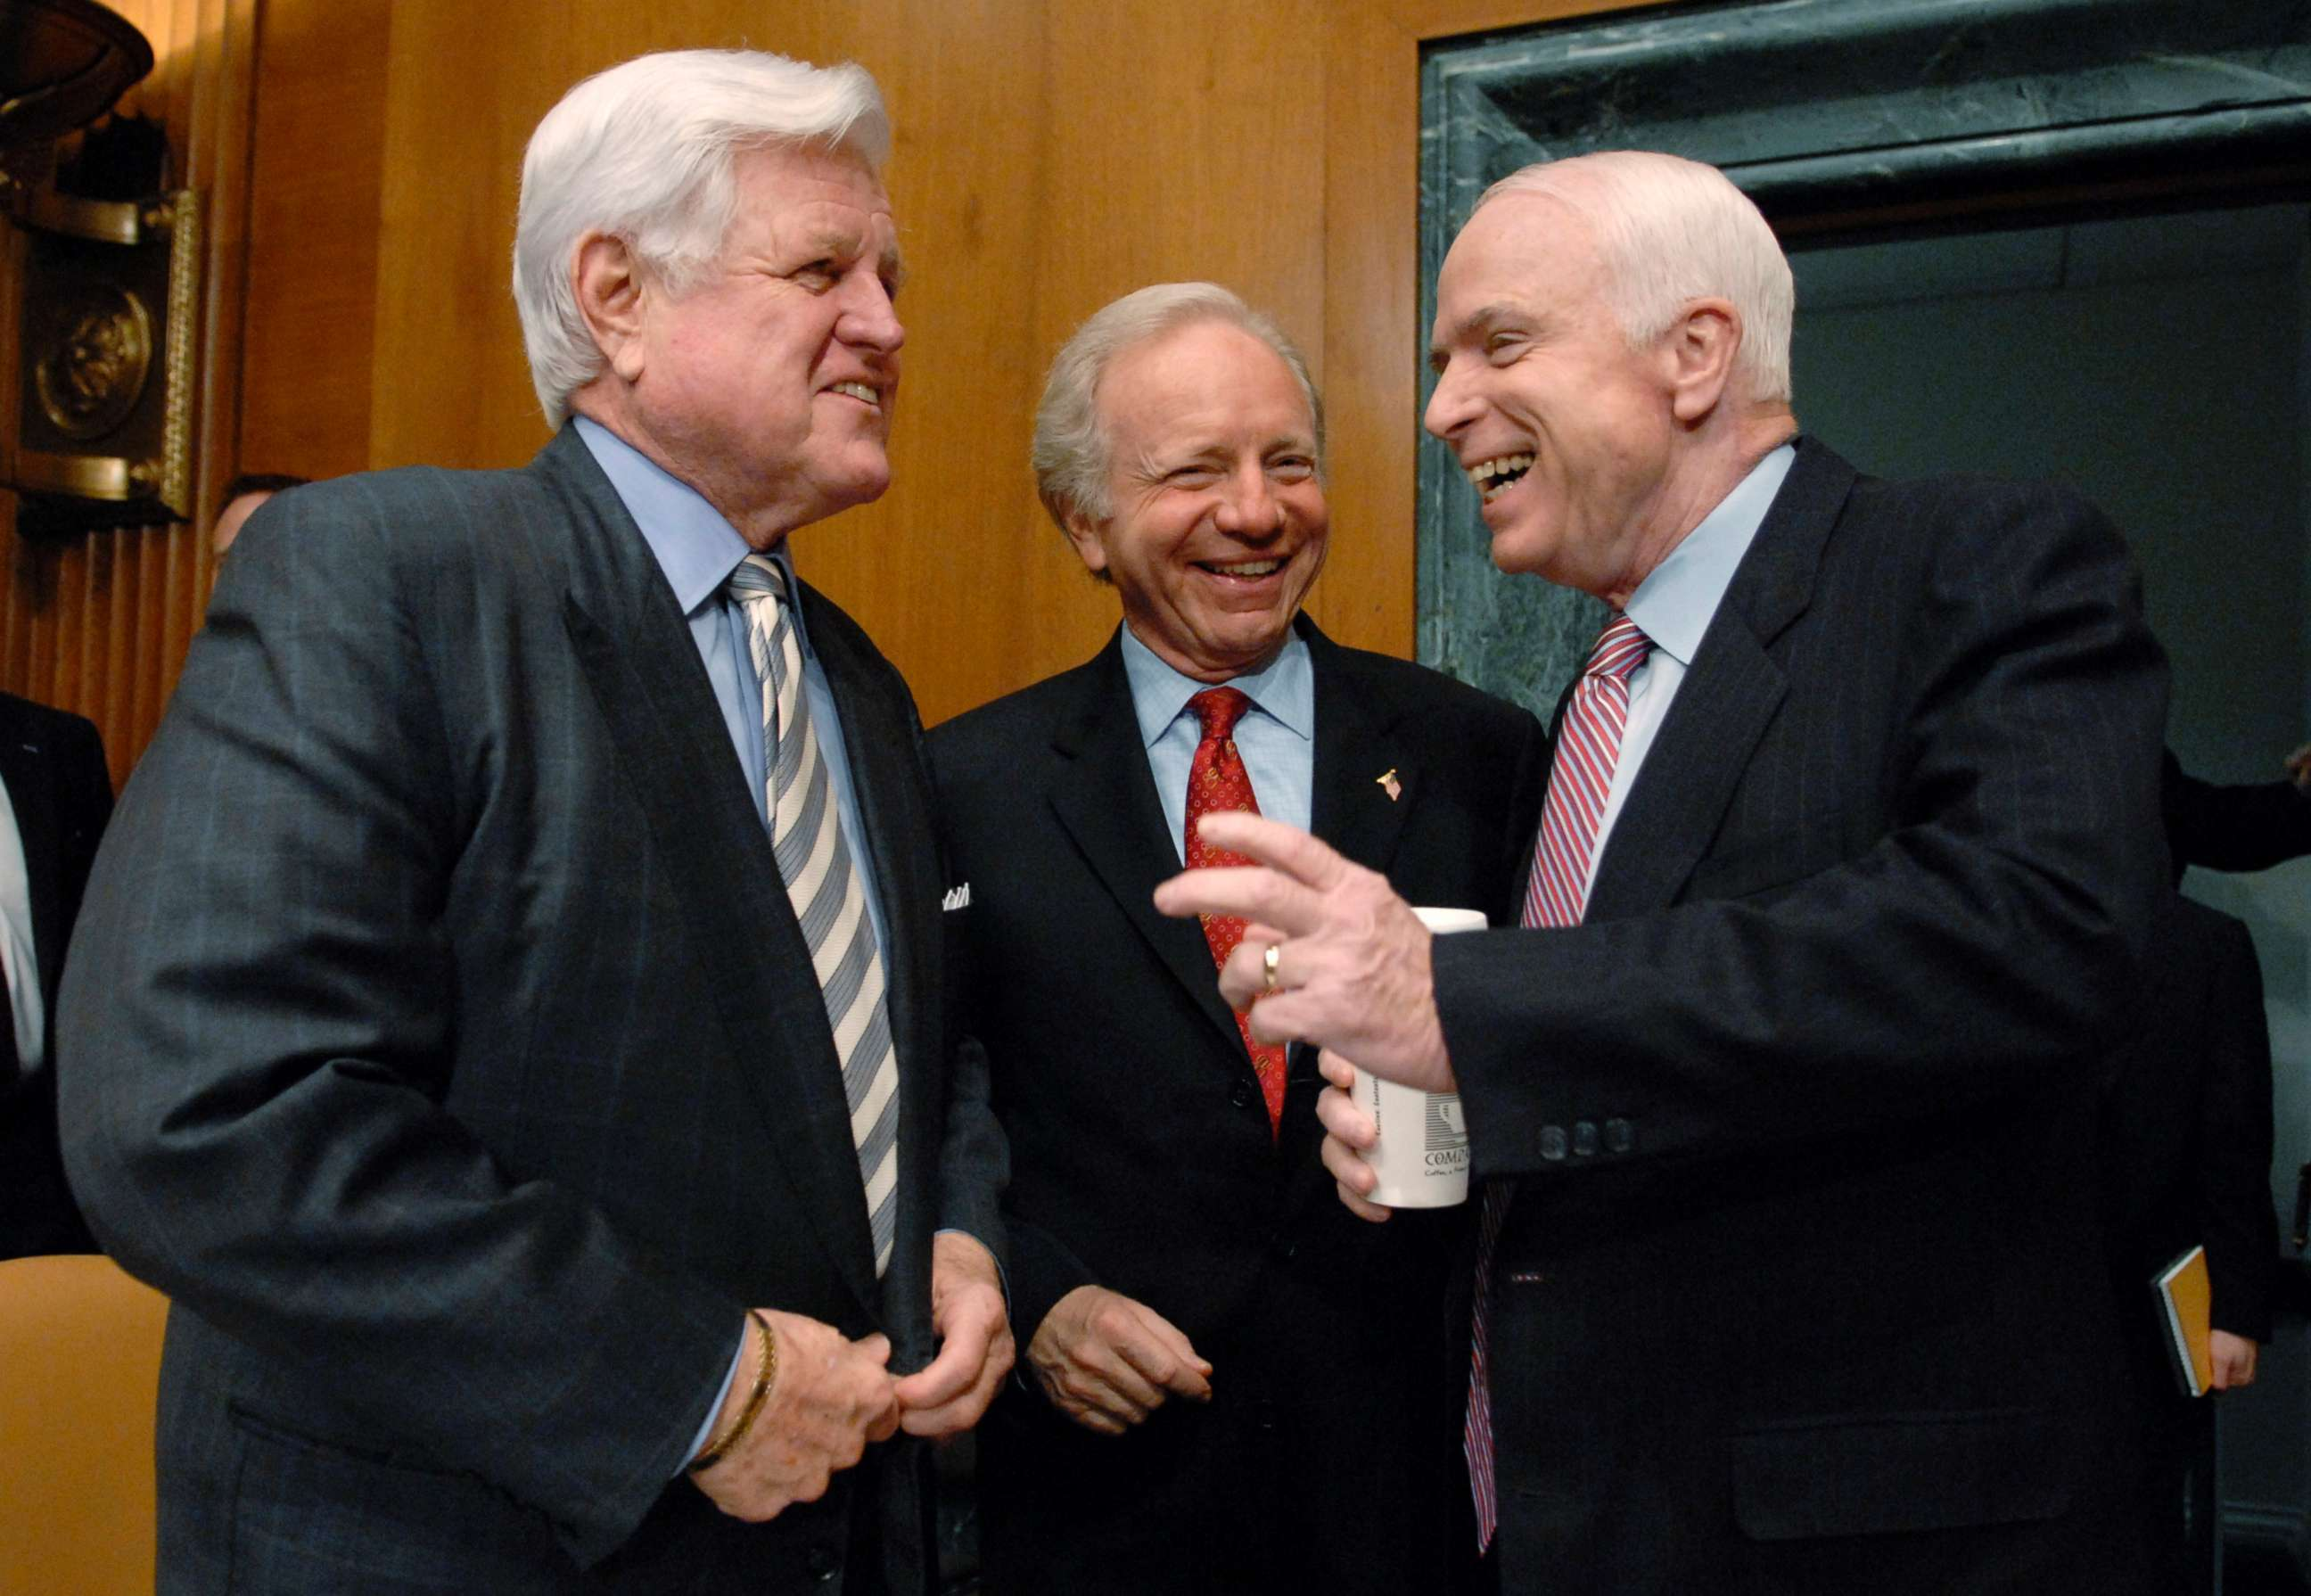 Image result for PHOTOS OF TED KENNEDY AND JOHN MCCAIN